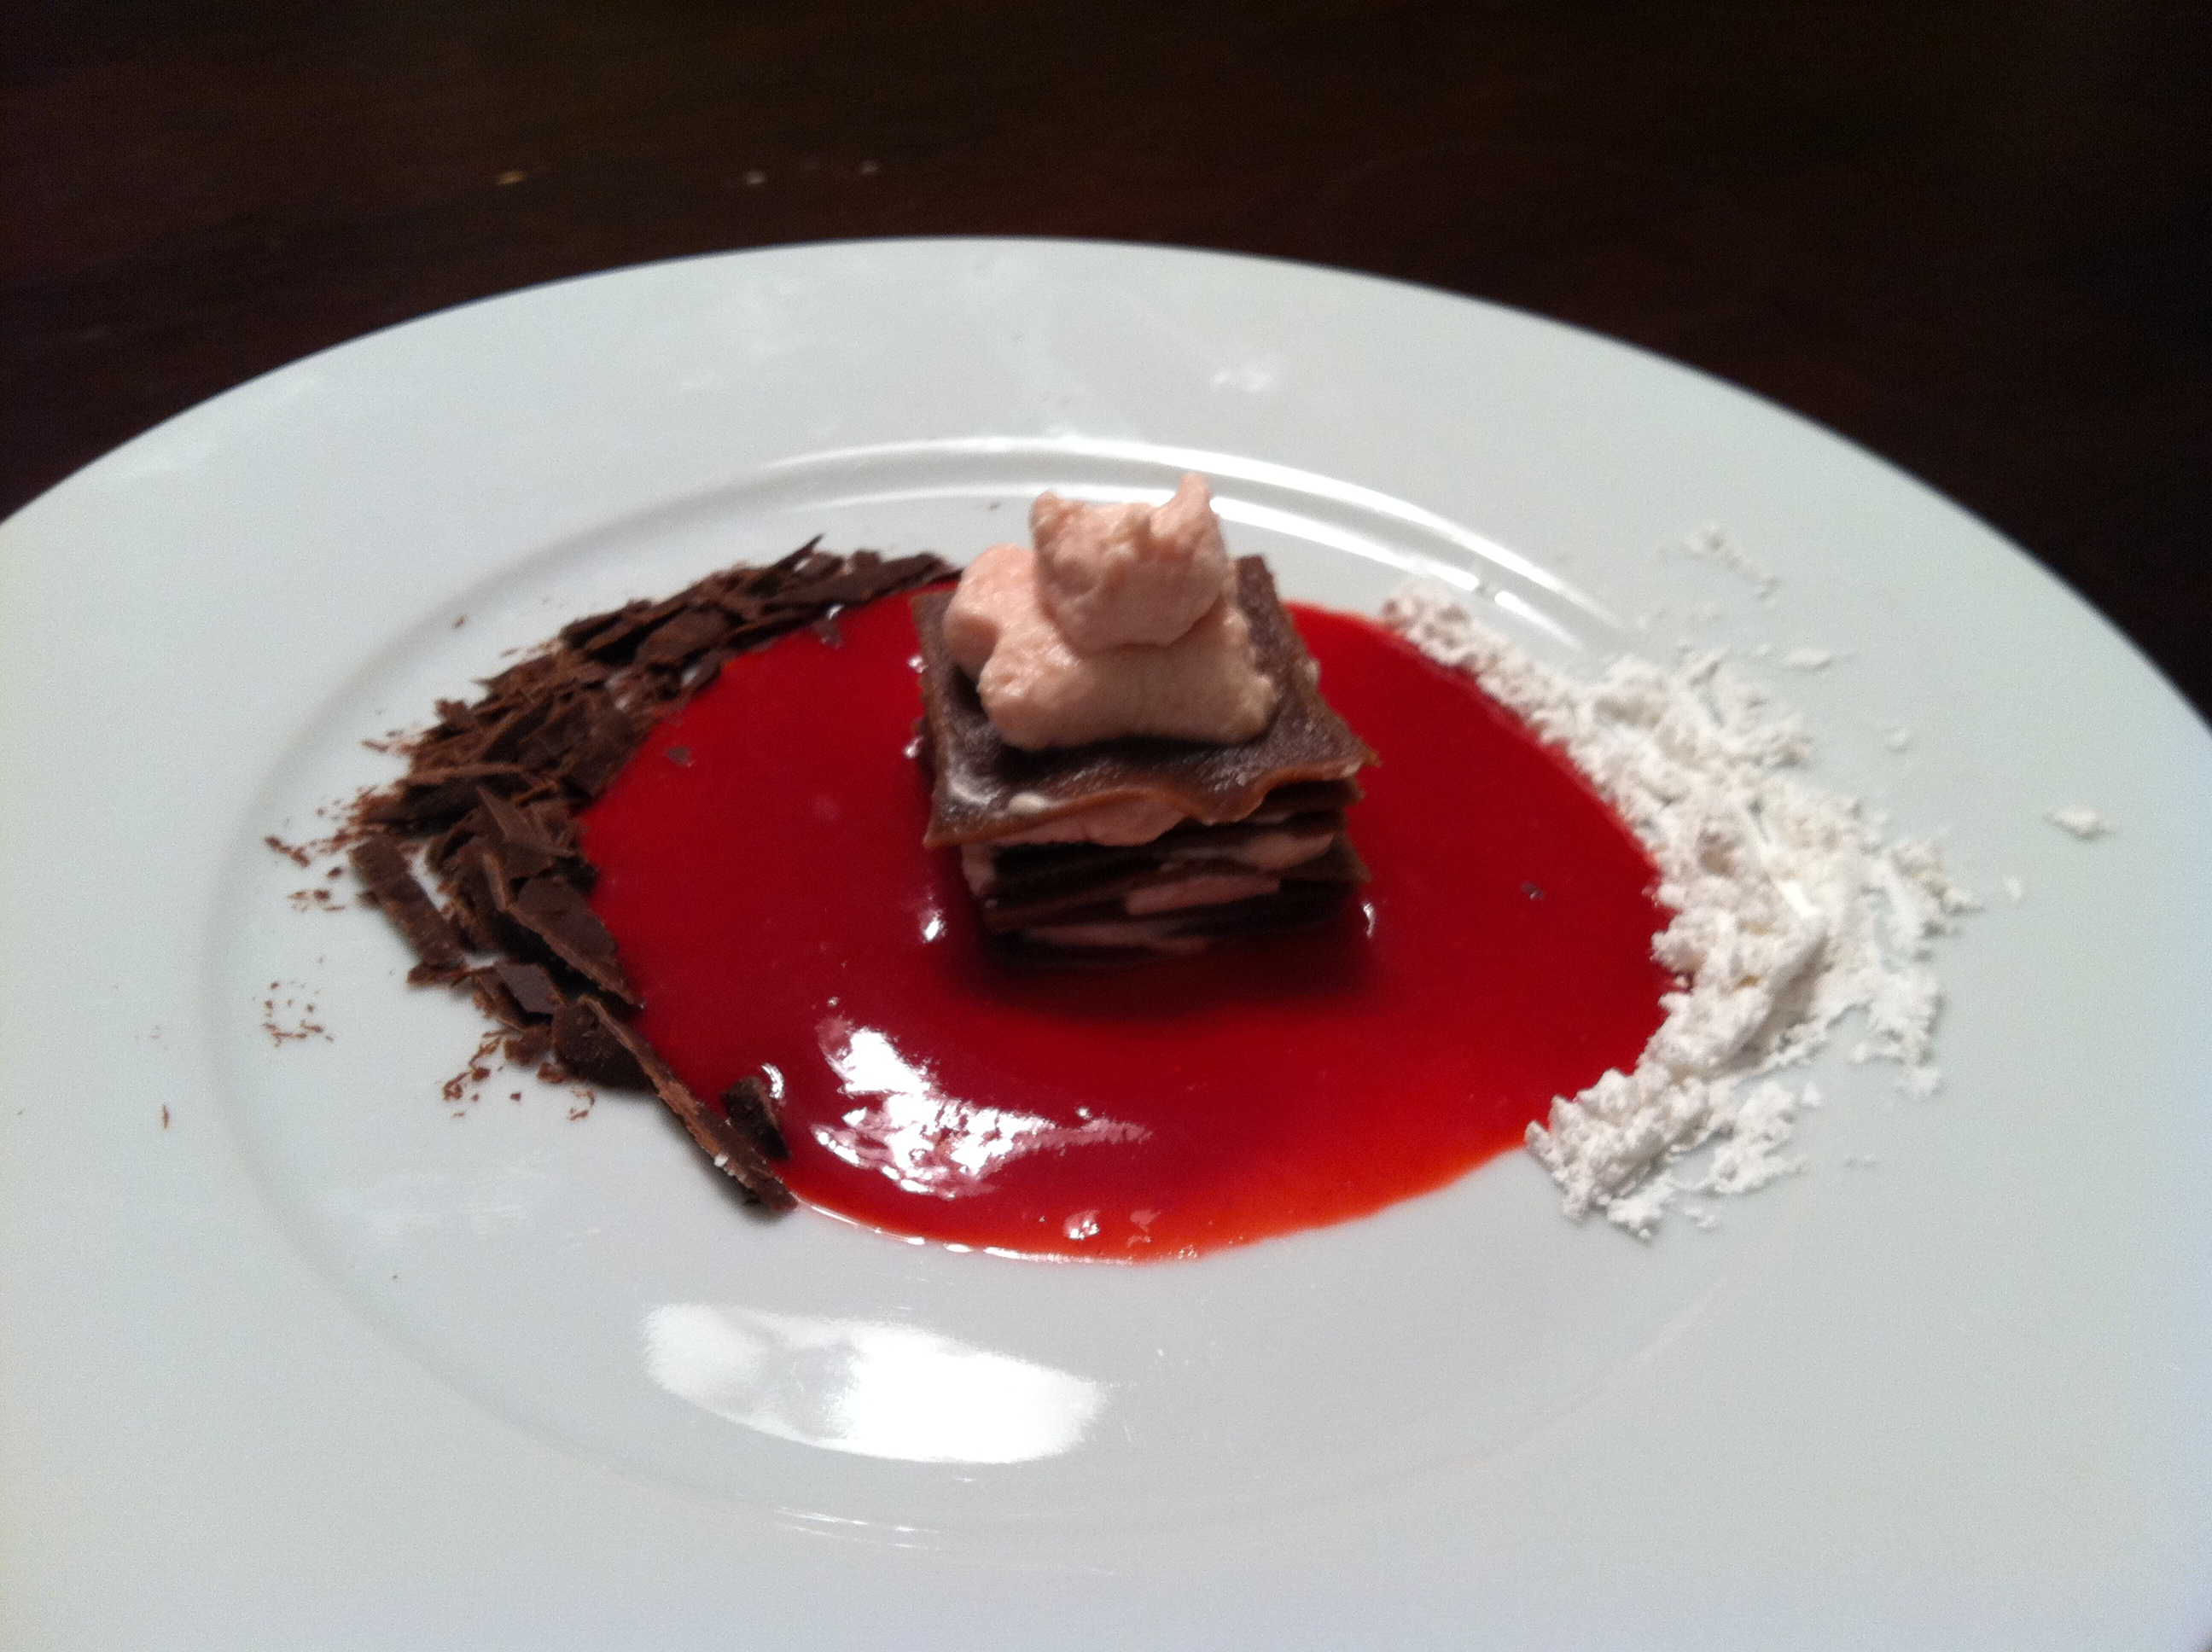 Chocolate Pasta Napolean with Raspberry Coulis and Whipped Cream